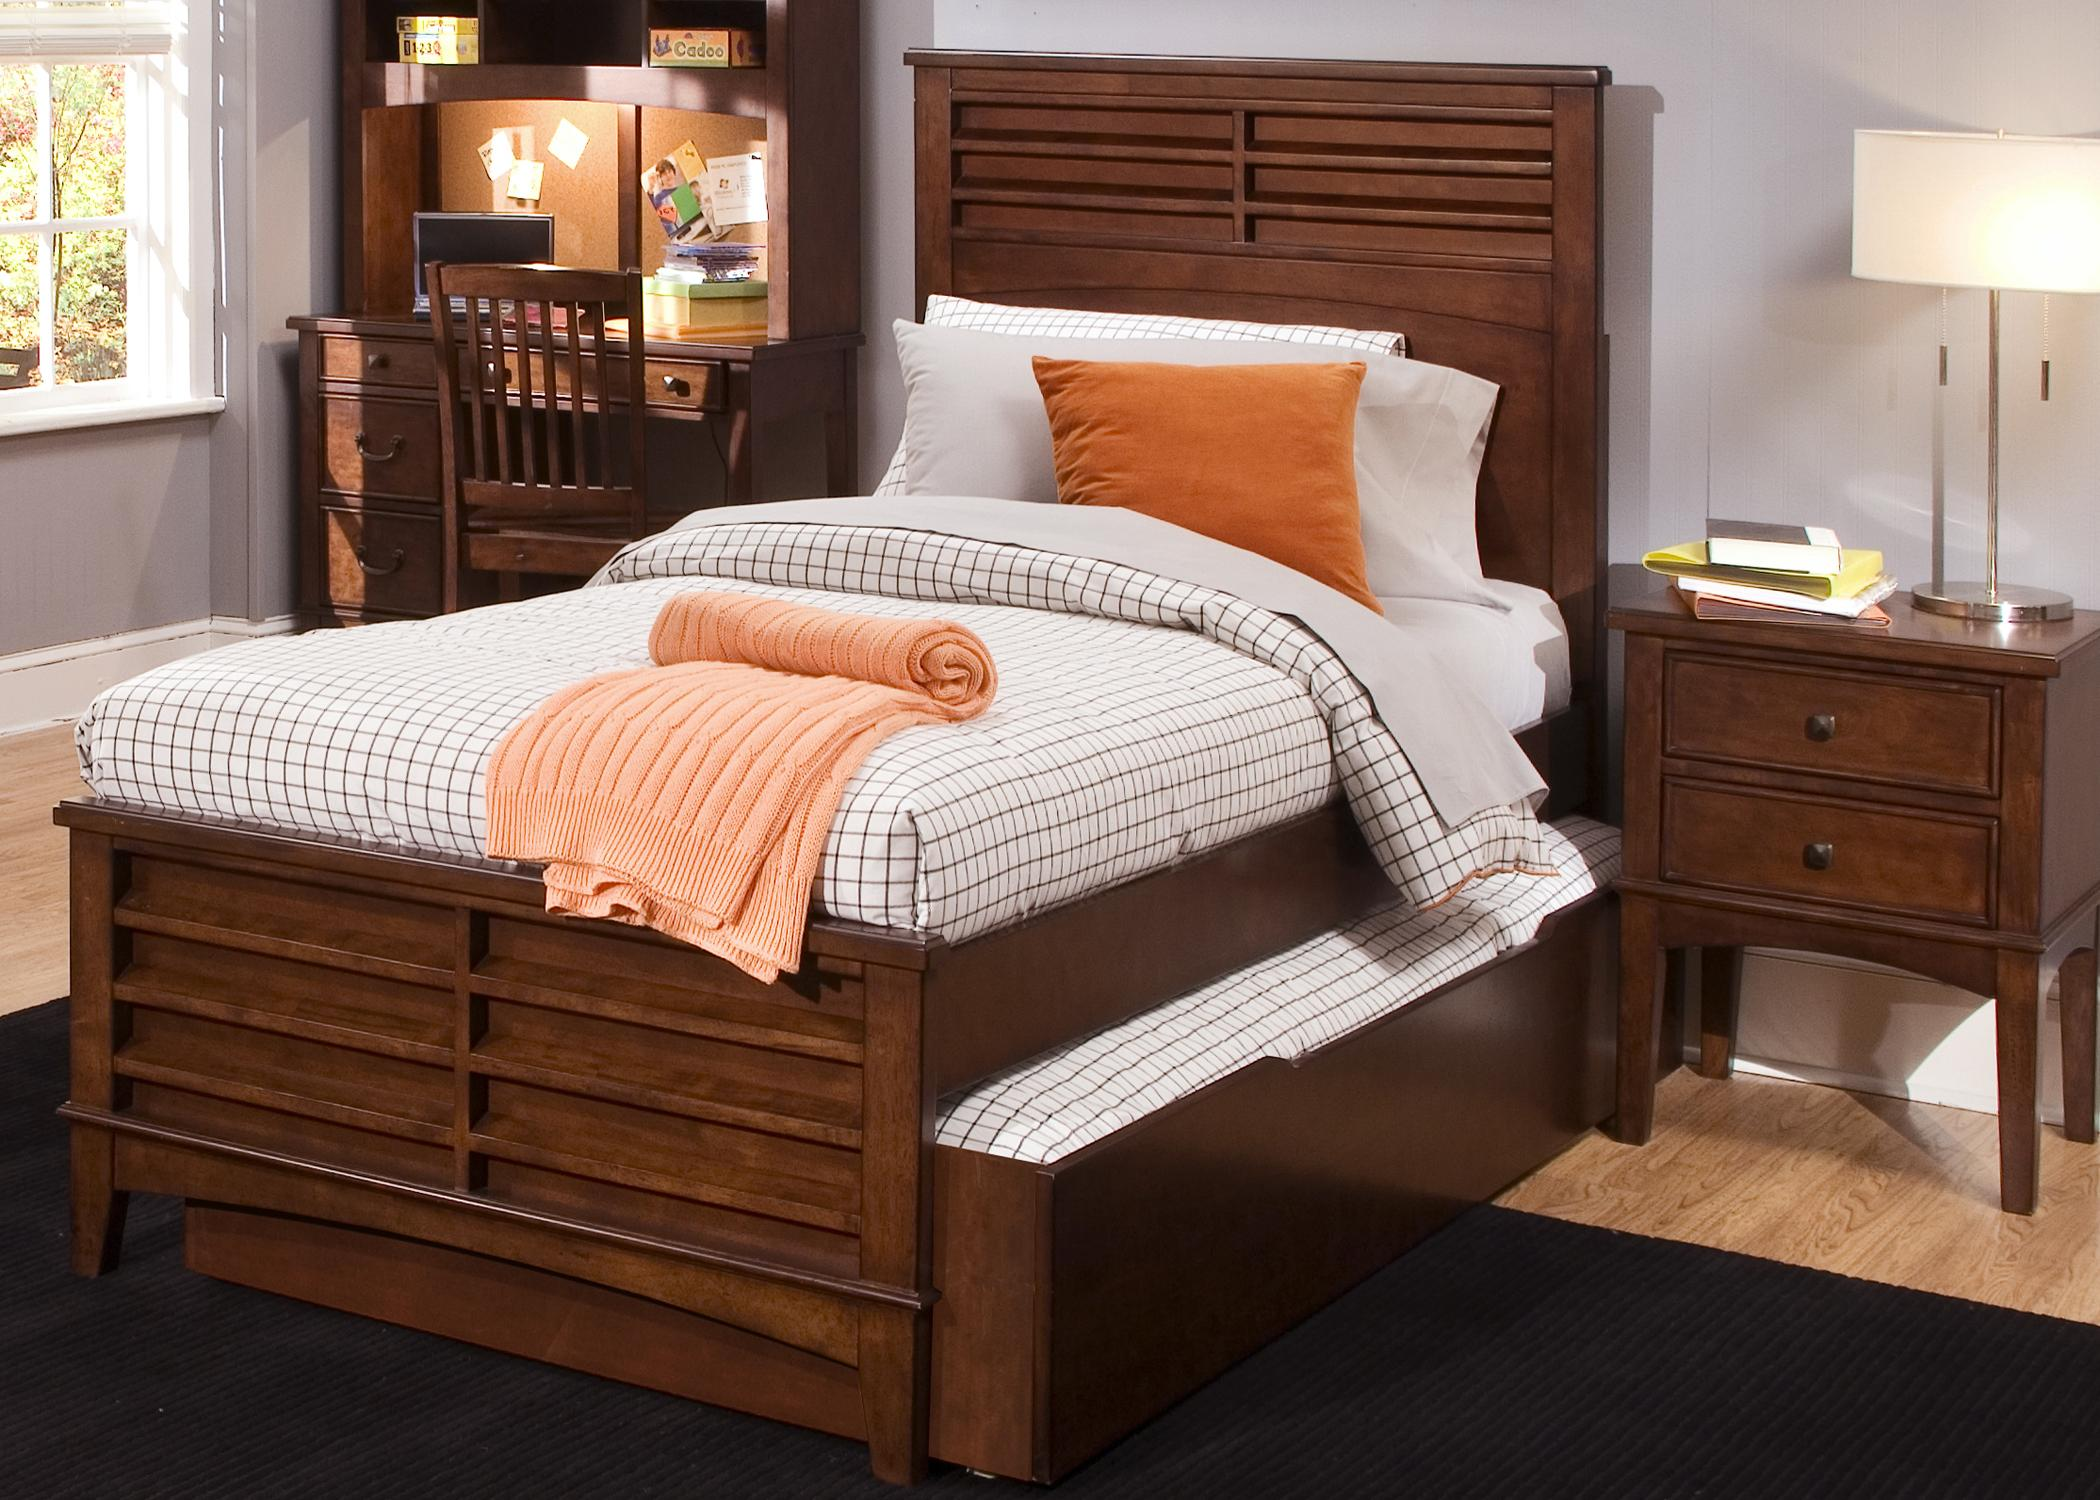 Liberty Furniture Chelsea Square Youth Full Size Panel Bed With Trundle Storage Drawer